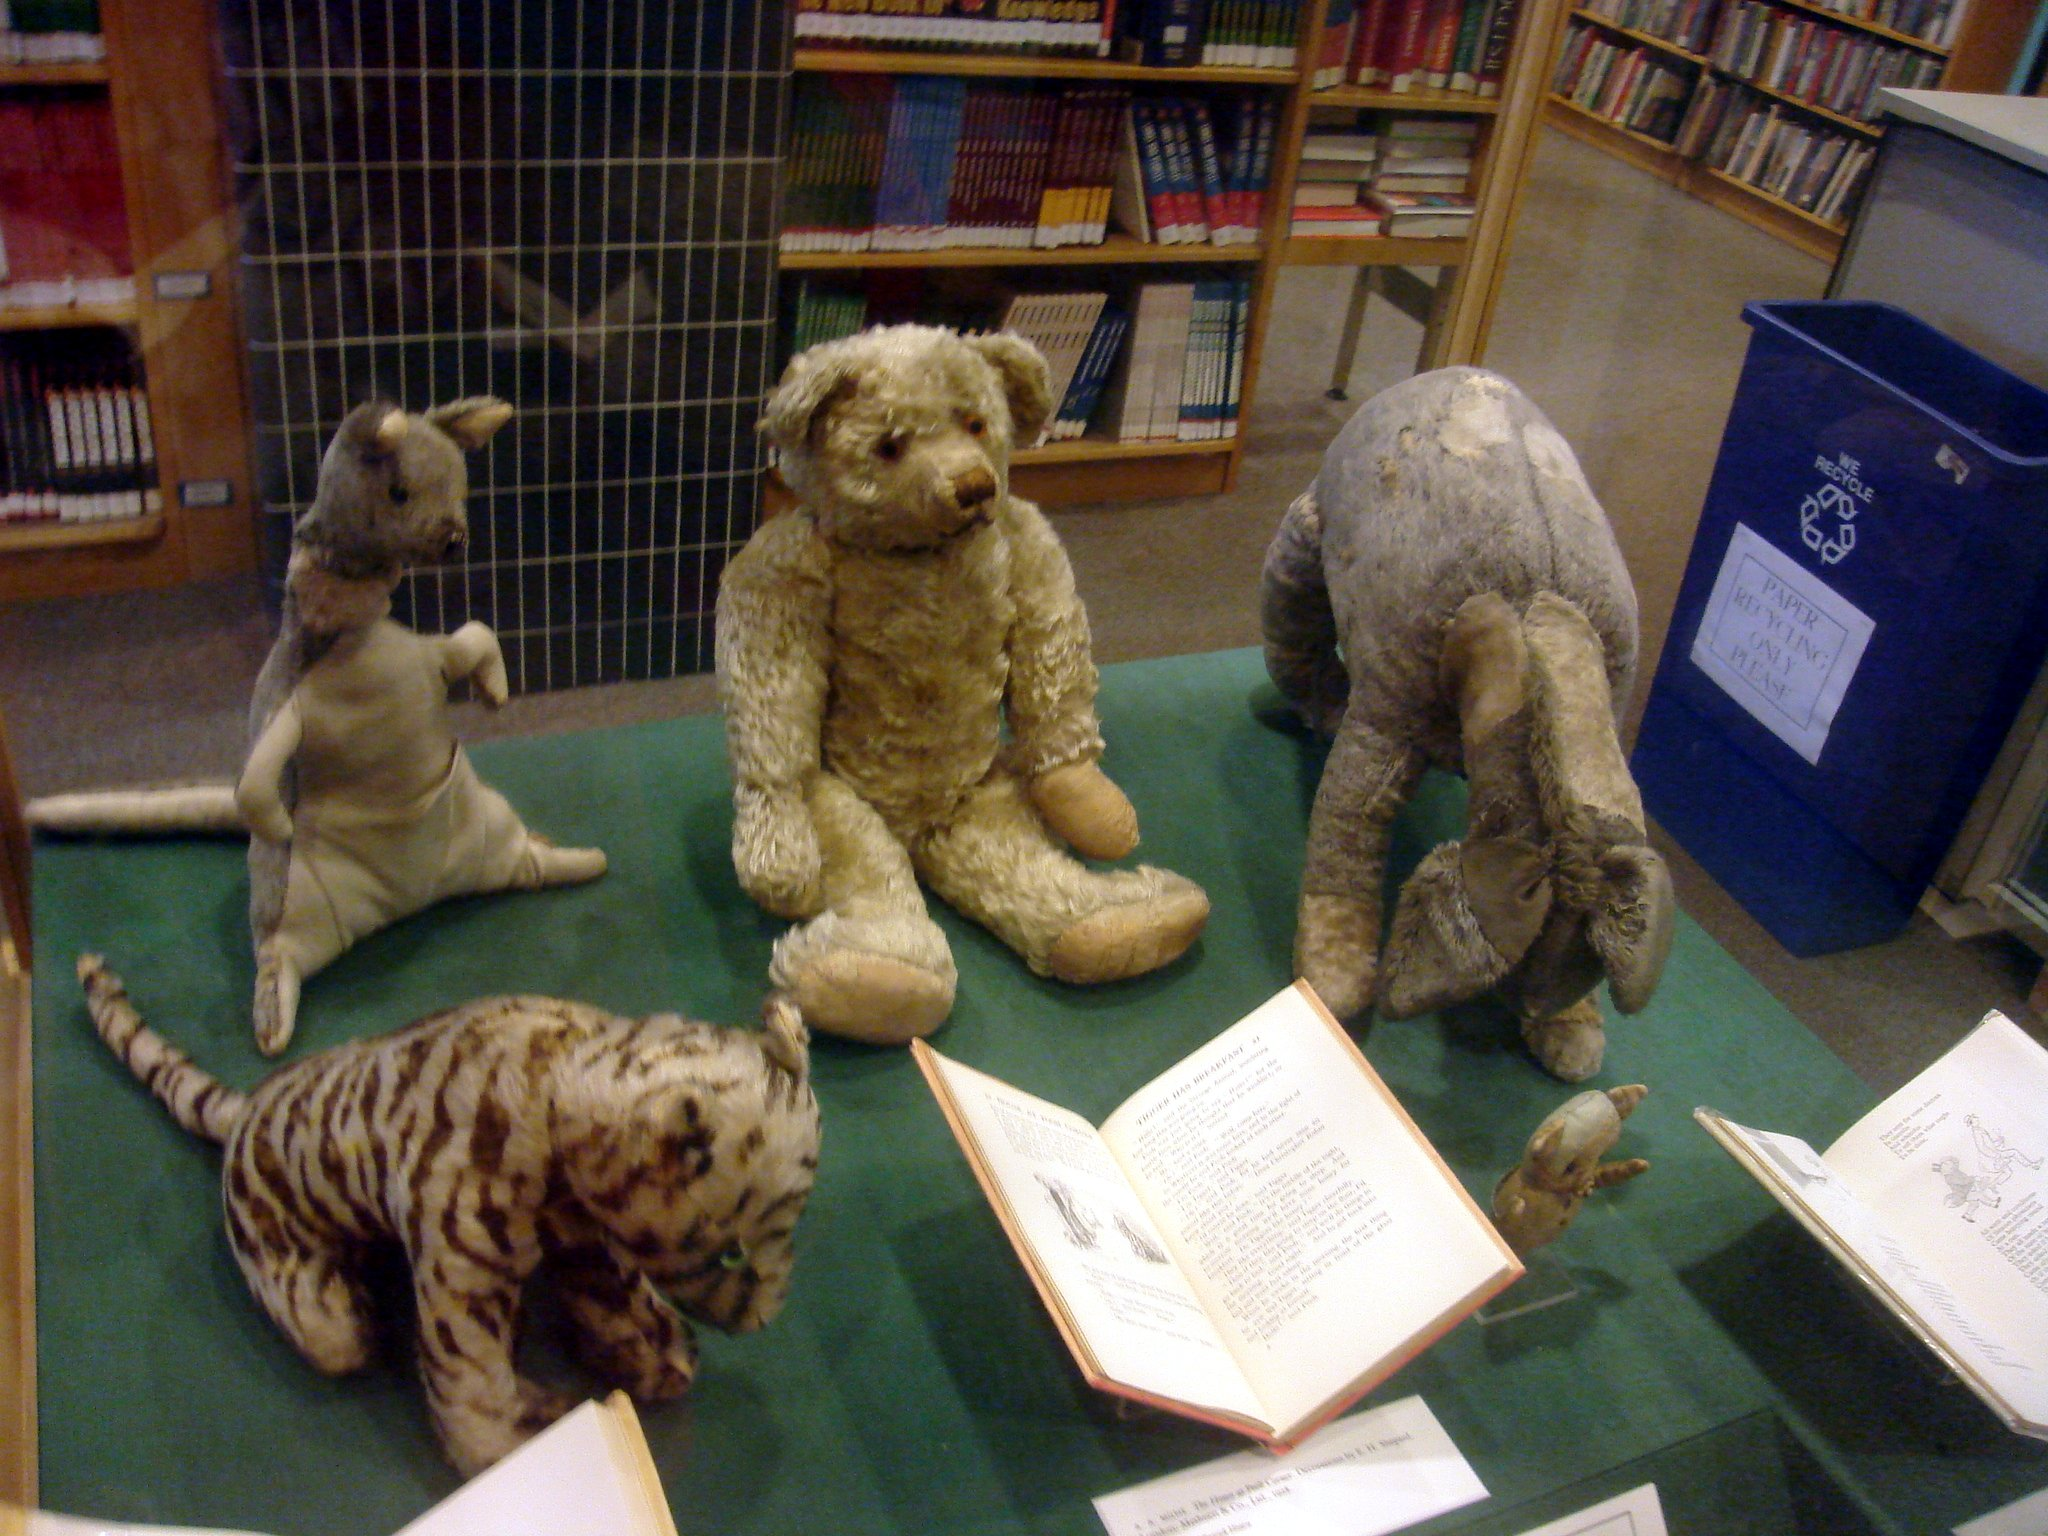 The original Winnie the Pooh toys from Christopher Robin's room.